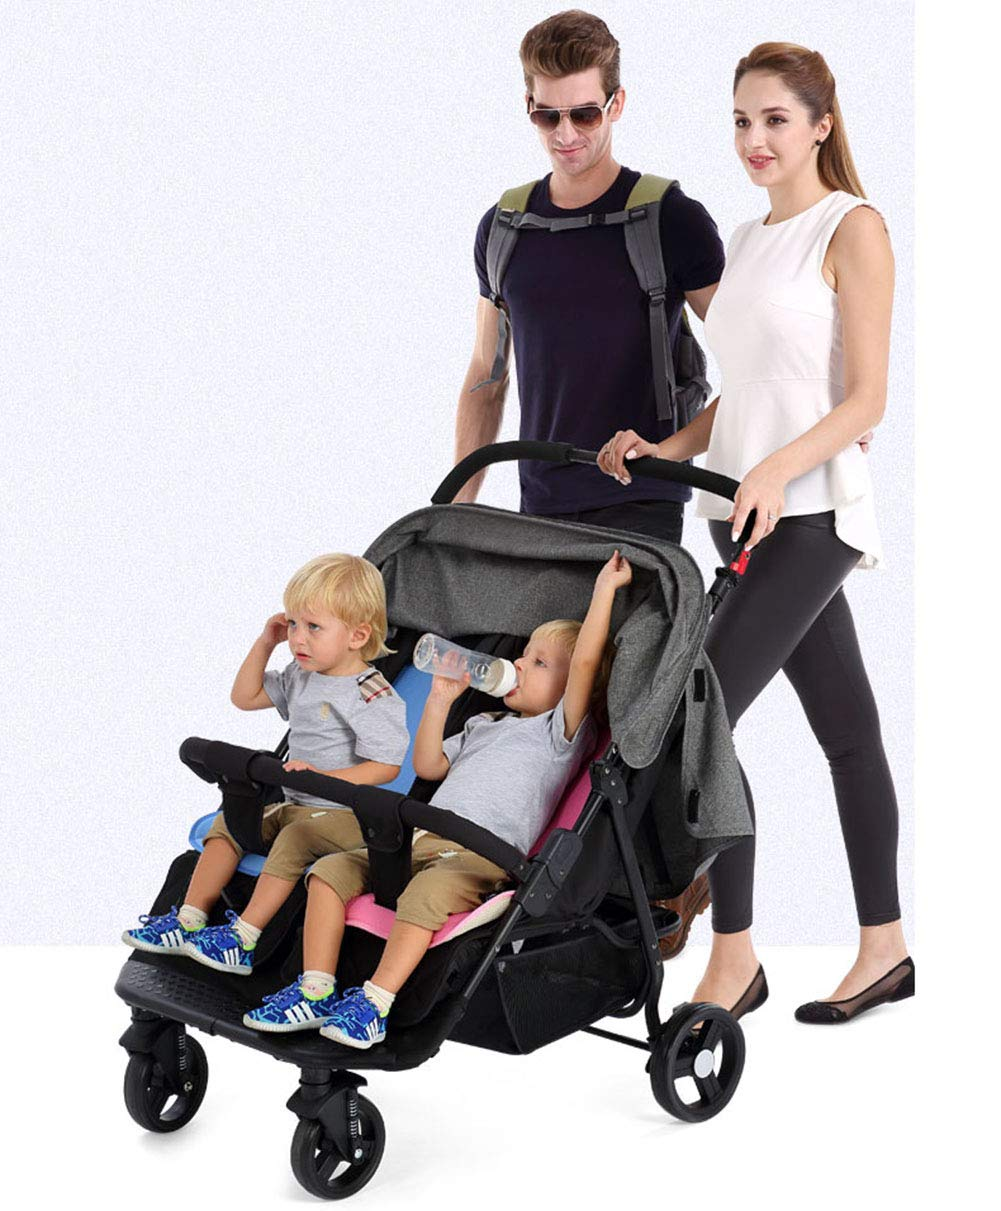 XUE Baby stroller, multi-function twins double foldable to lie flat with 5-Point Safety System and Multi-Positon Reclining Seat Extended Canopy Easy One Hand Fold XUE ∵ Wipeable and washable design for easier cleaning. ∵ Convertible high chair becomes booster and toddler seat. ∵ Keeps little ones secure with 3-point and 5-point harnesses. 2